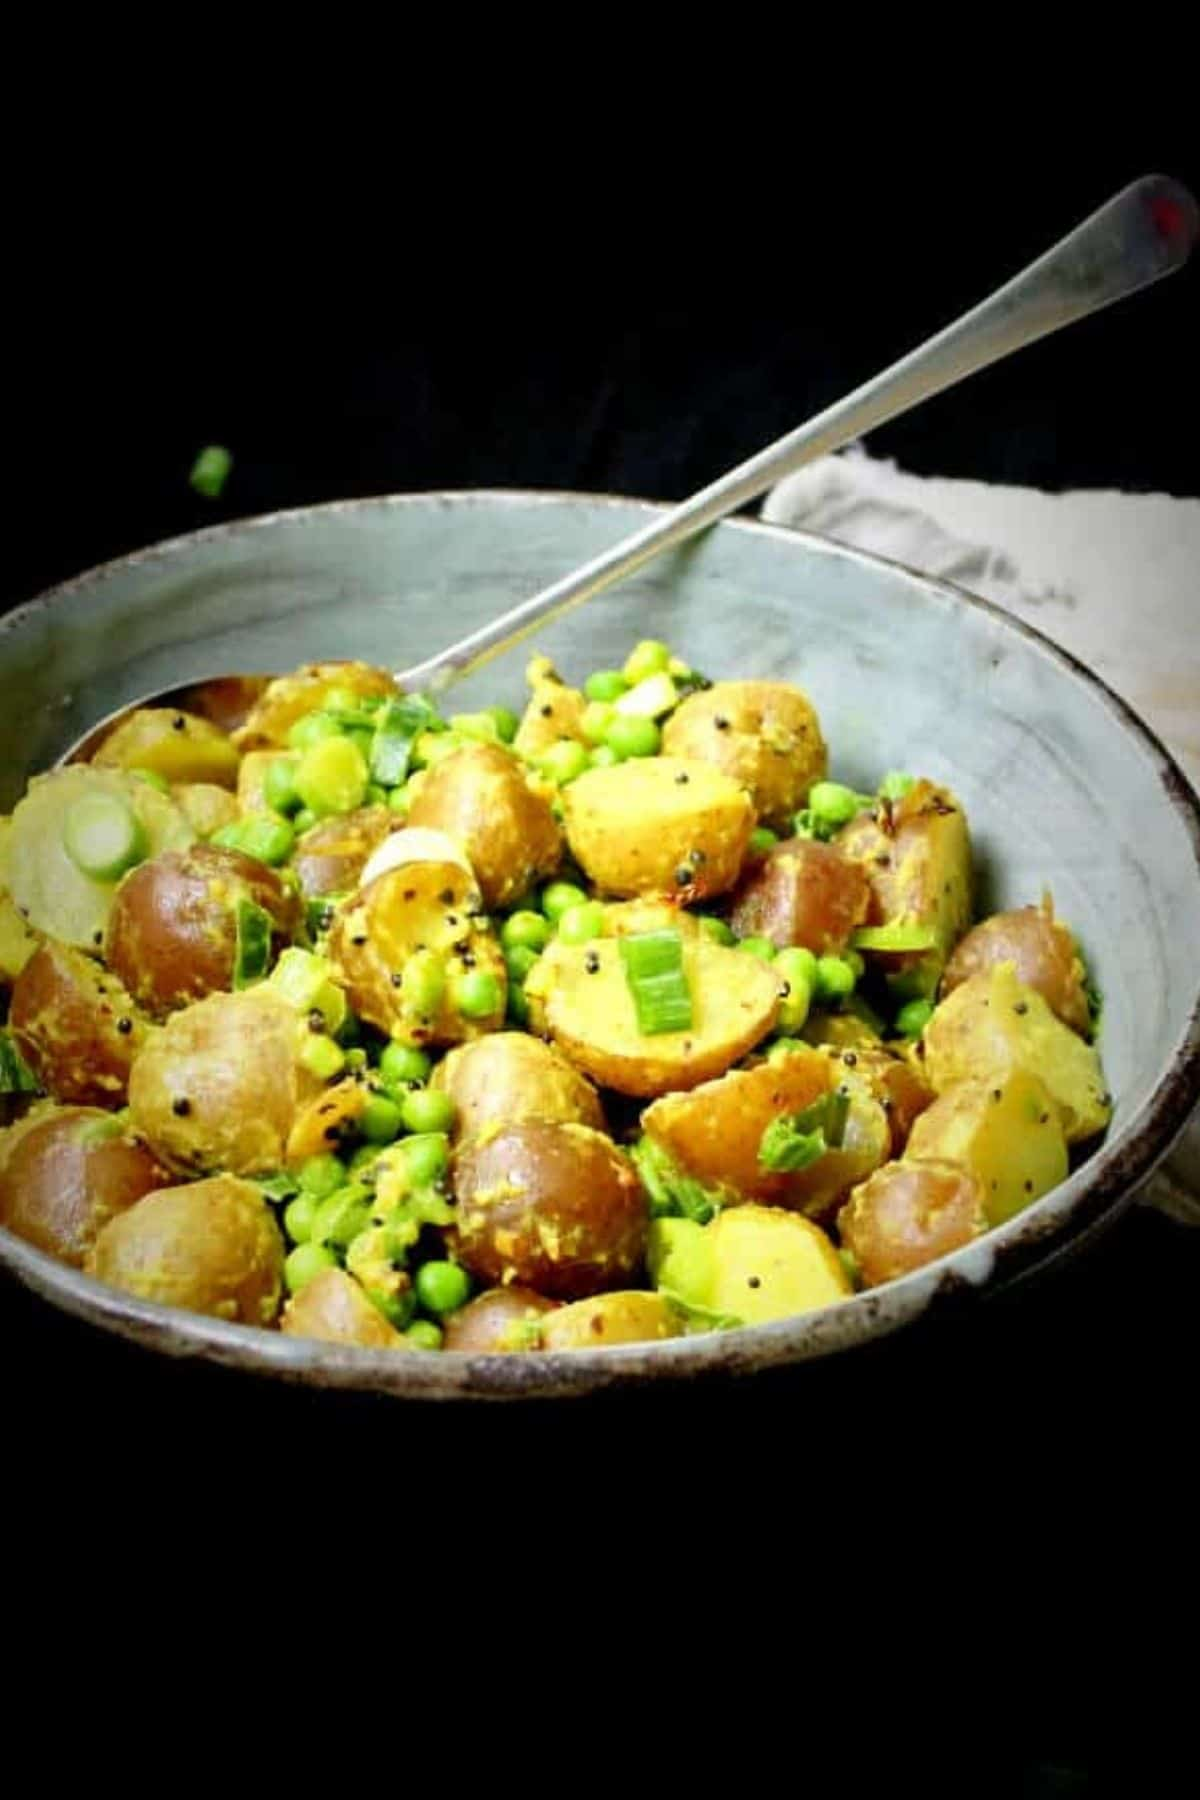 Front photo of vegan potato salad in a glazed green and brown bowl.